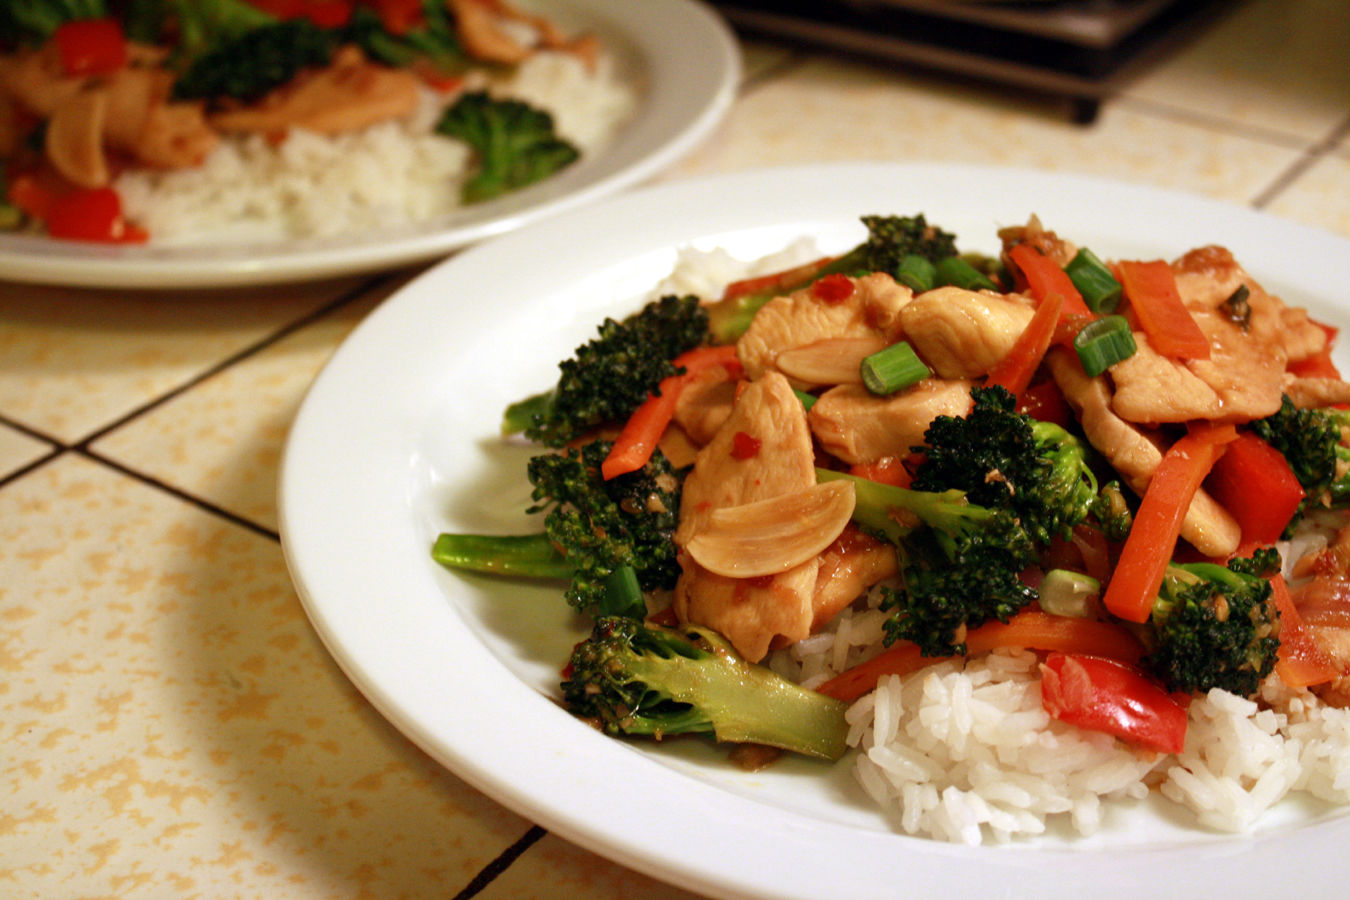 a plate of stir-fried chicken and vegetables on rice